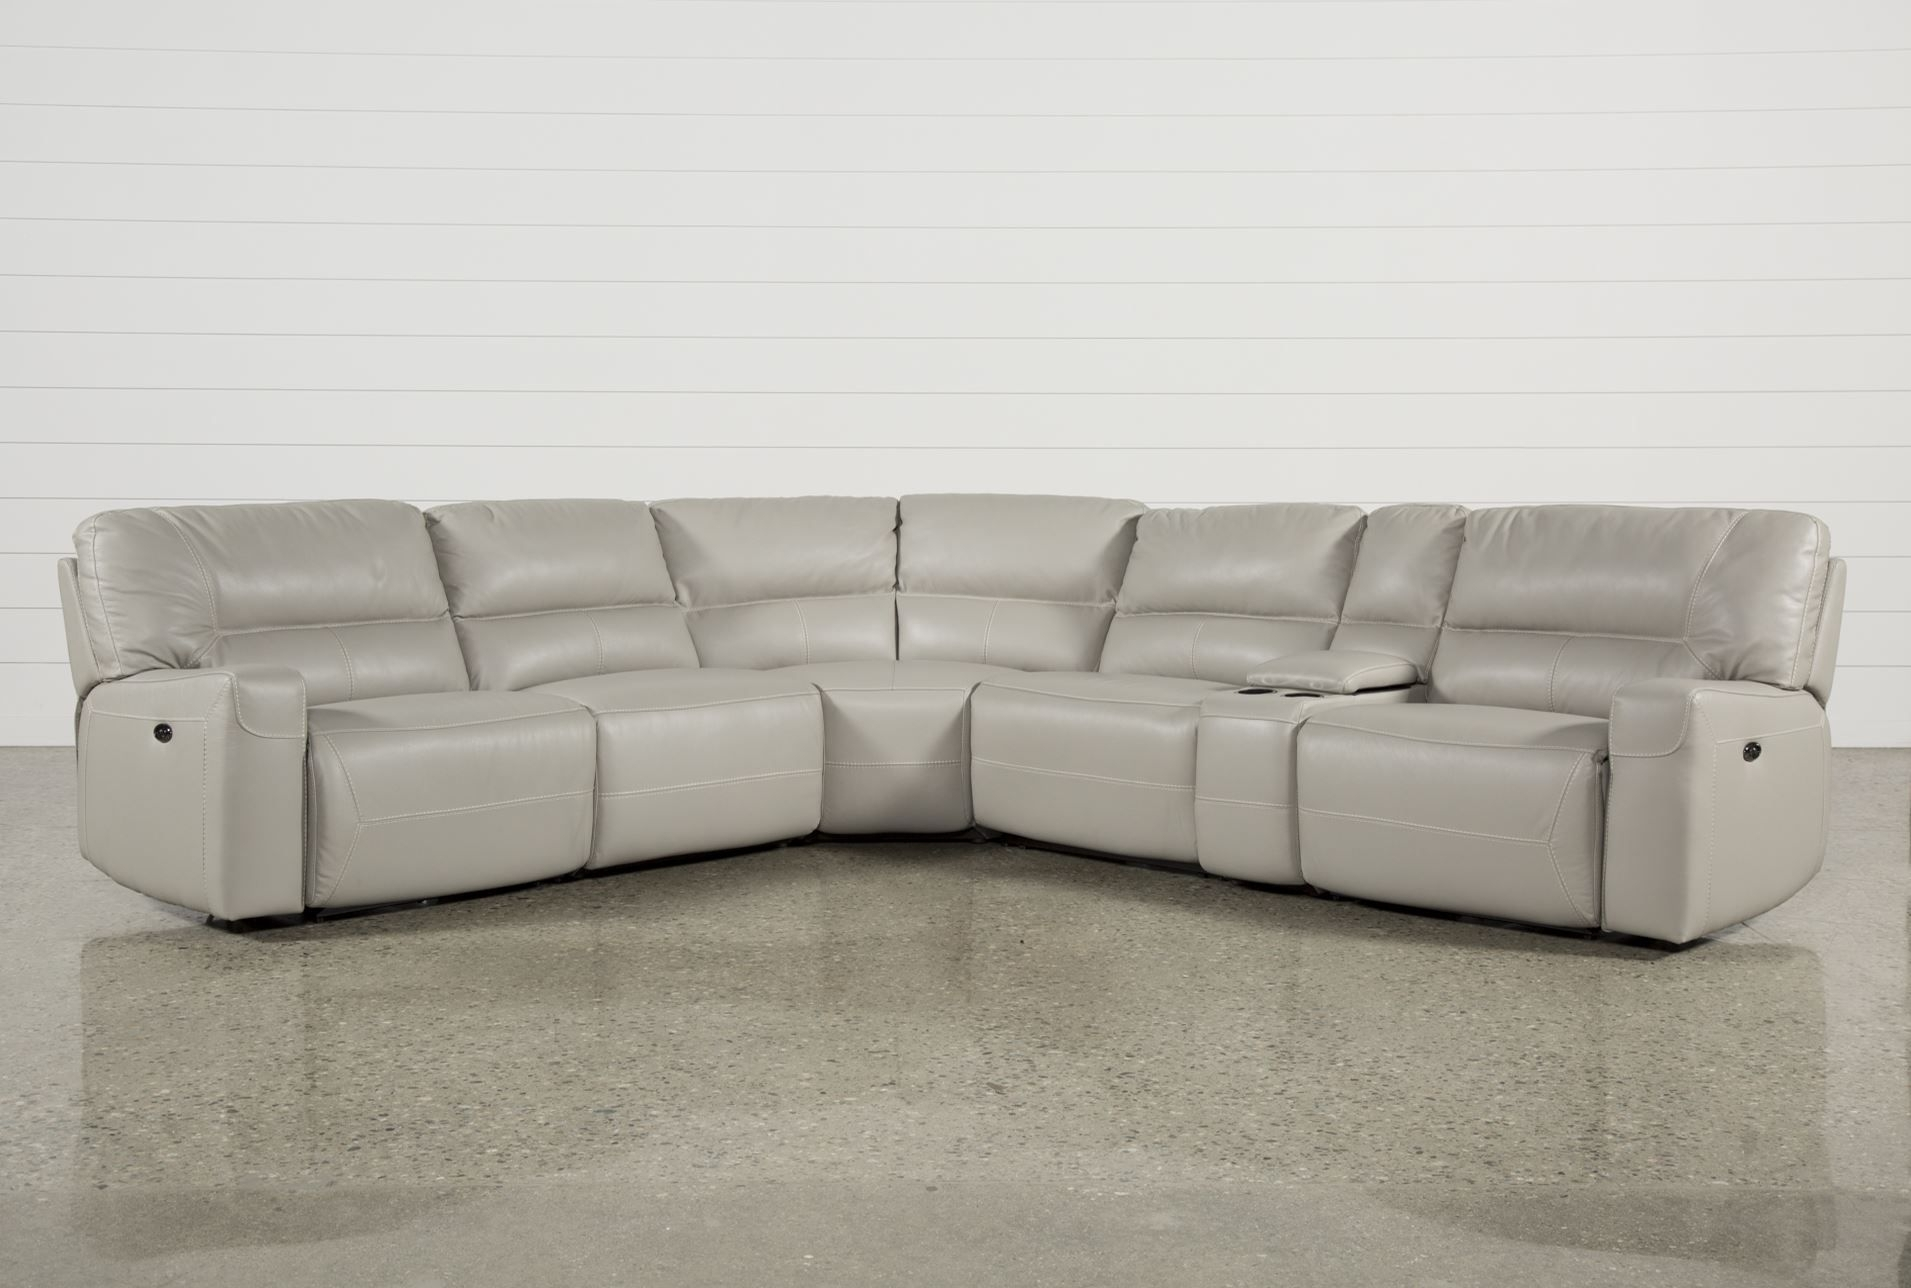 6 Piece Power Reclining Sectional, Renaldo, Grey, Sofas | Reclining In Waylon 3 Piece Power Reclining Sectionals (View 5 of 25)